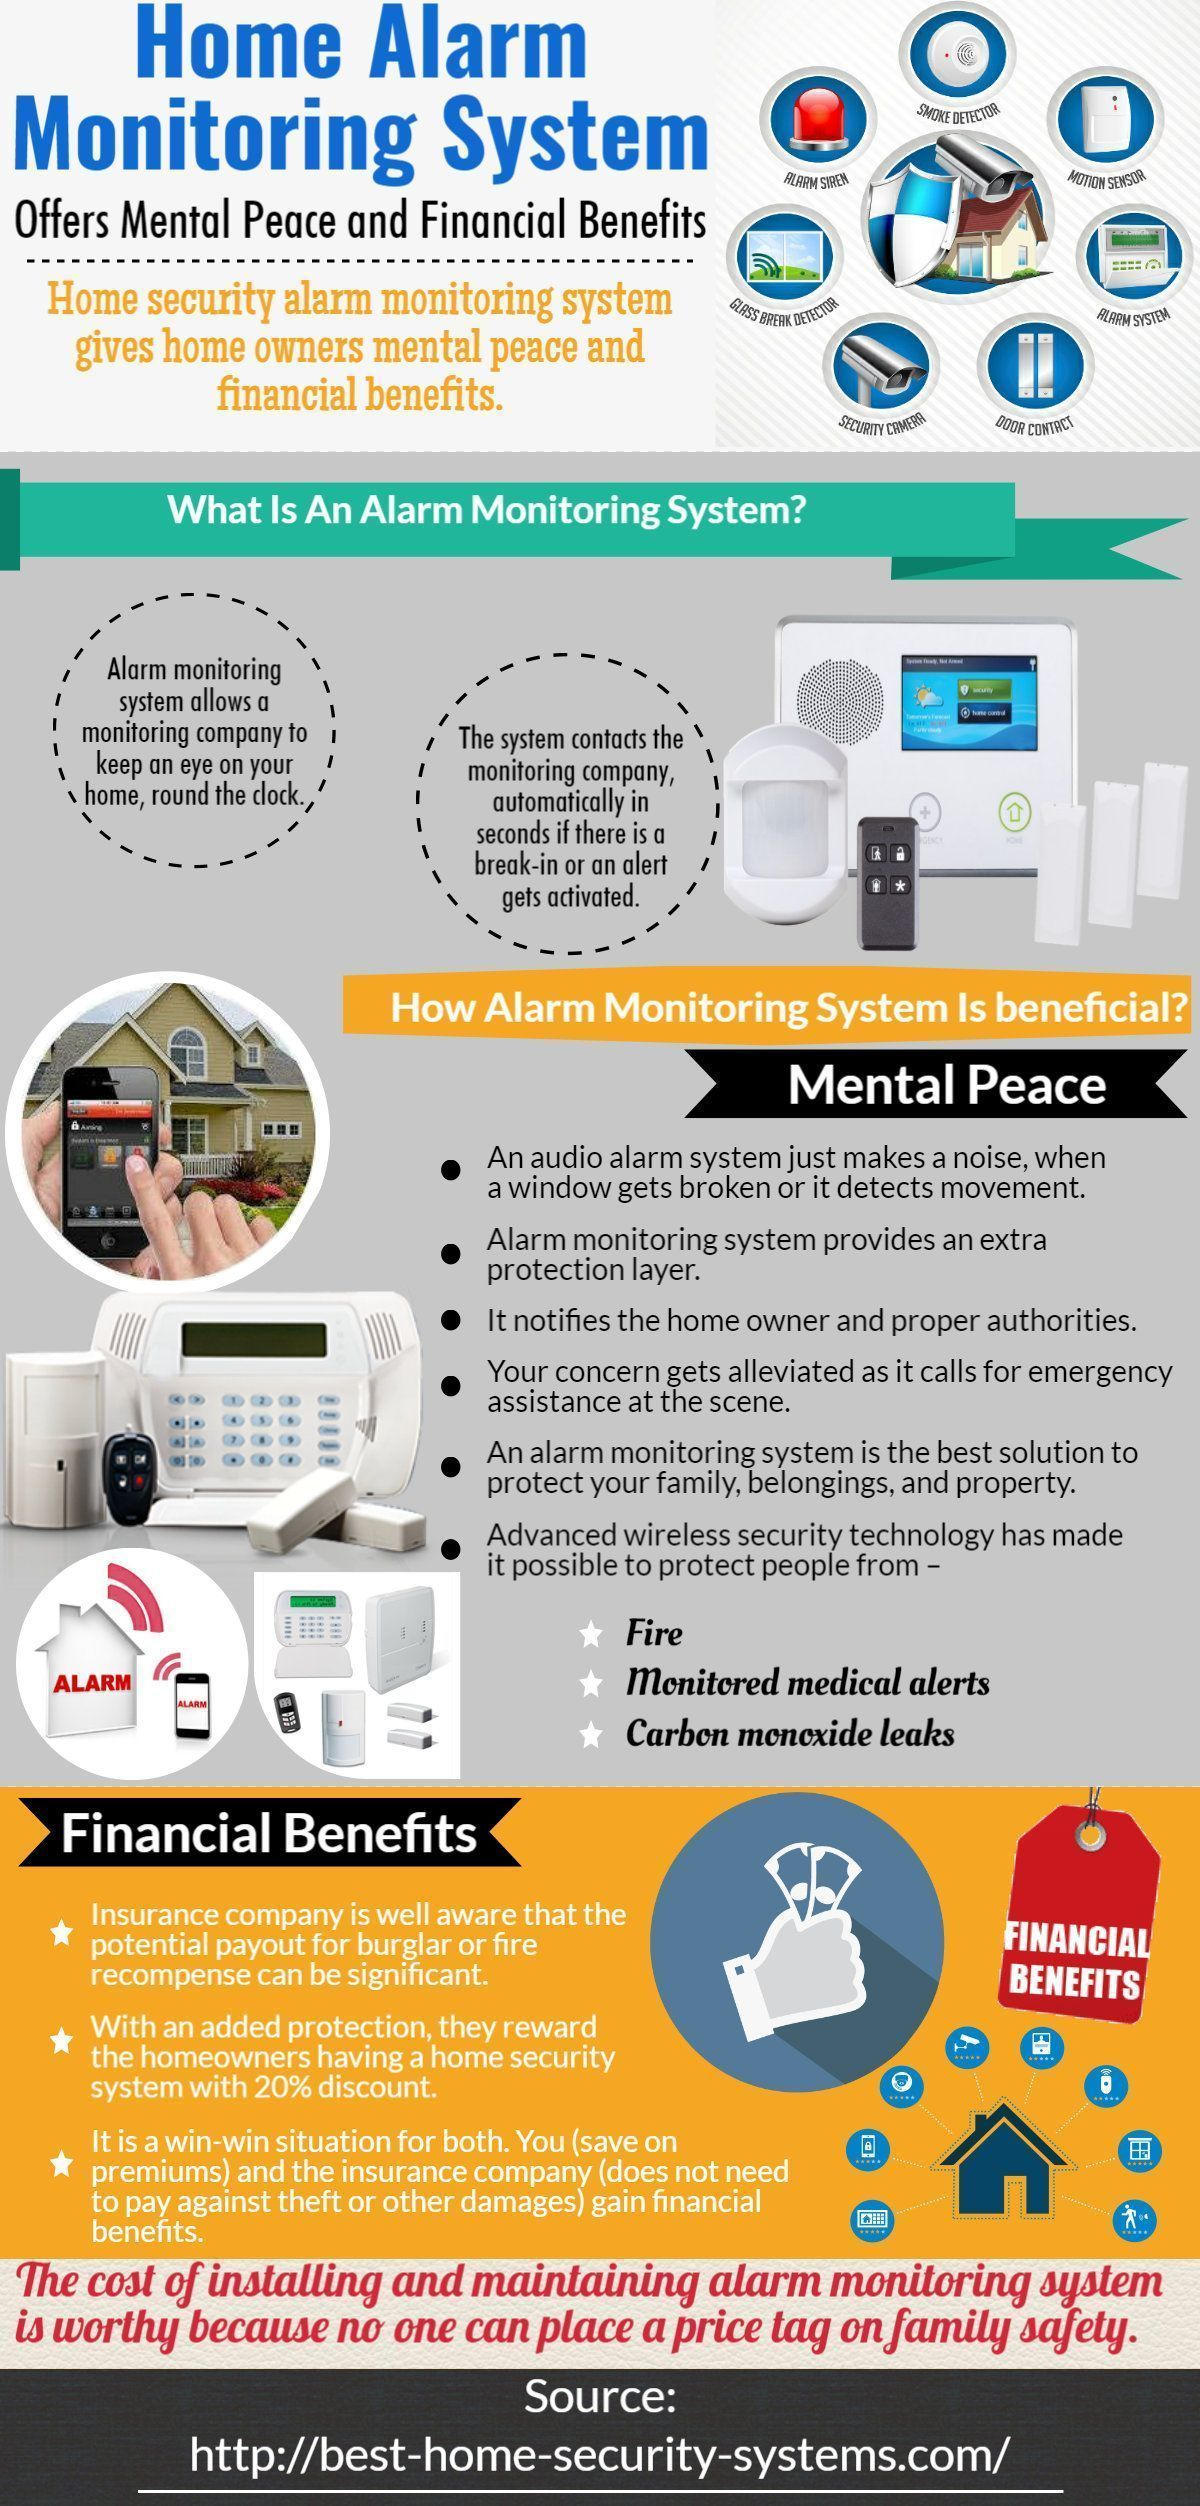 Home security alarm monitoring helps keep you and your family safe